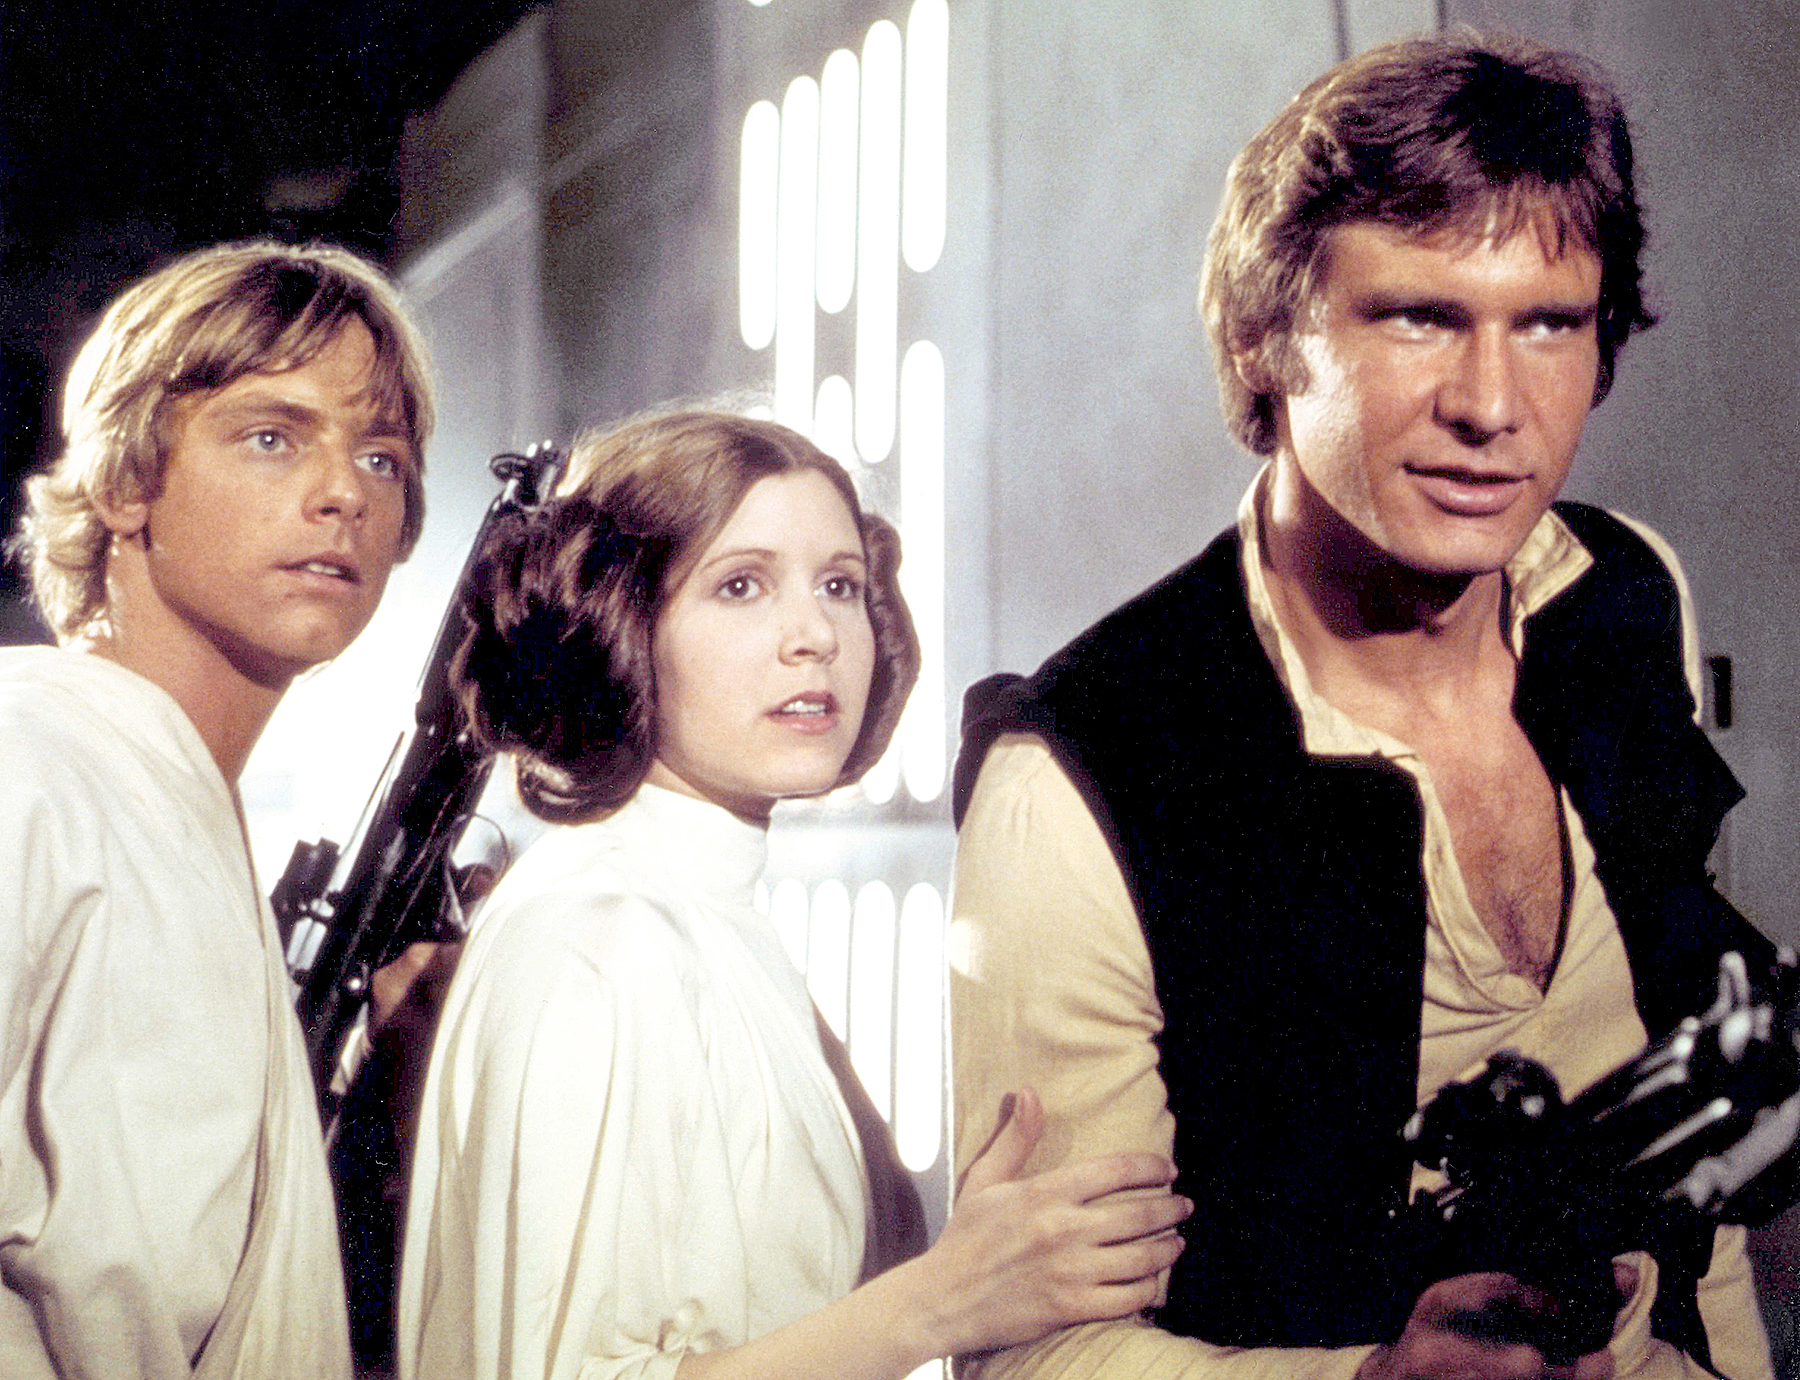 Mark Hamill Carrie Fisher Harrison Ford Star Wars: Episode IV - A New Hope